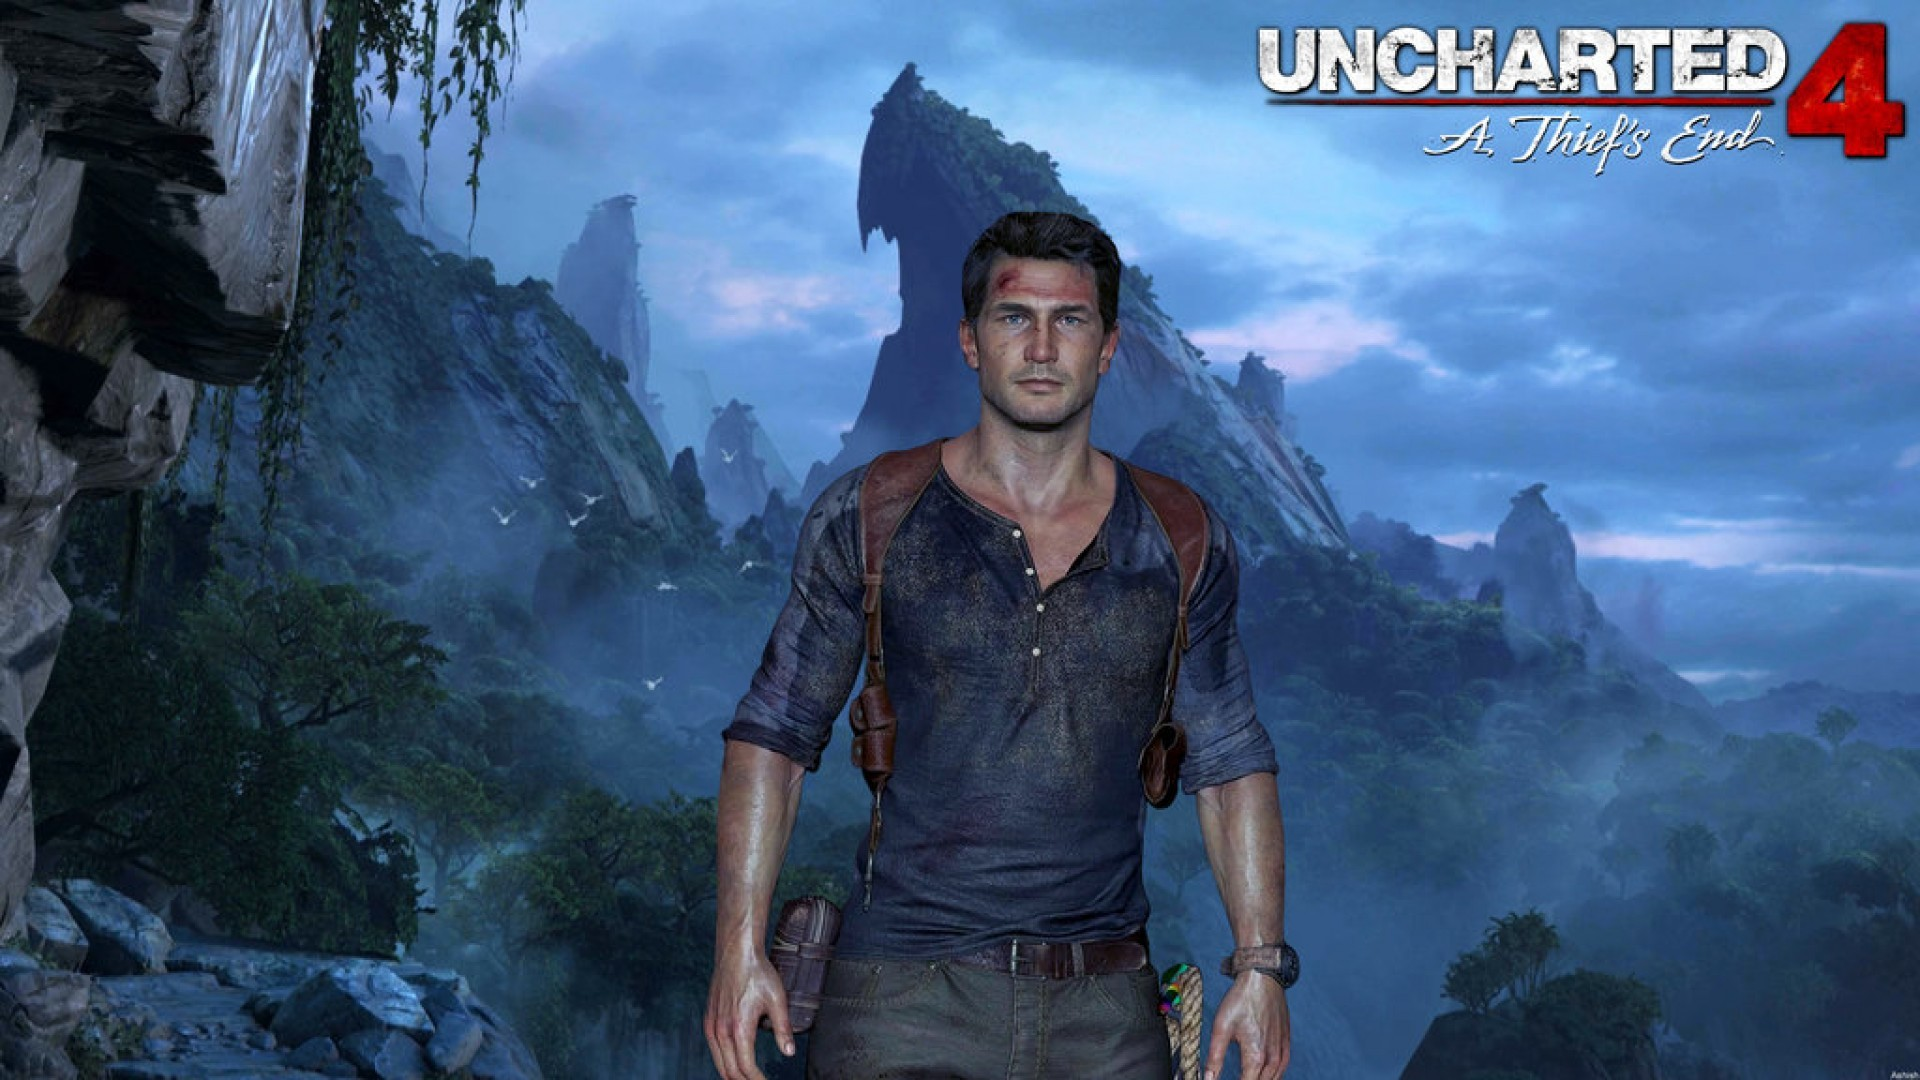 1920x1080 Image - Uncharted-wallpaper-by-ashish-kumar-on-uncharted-4-wallpaper-.jpg |  Uncharted Wiki | FANDOM powered by Wikia